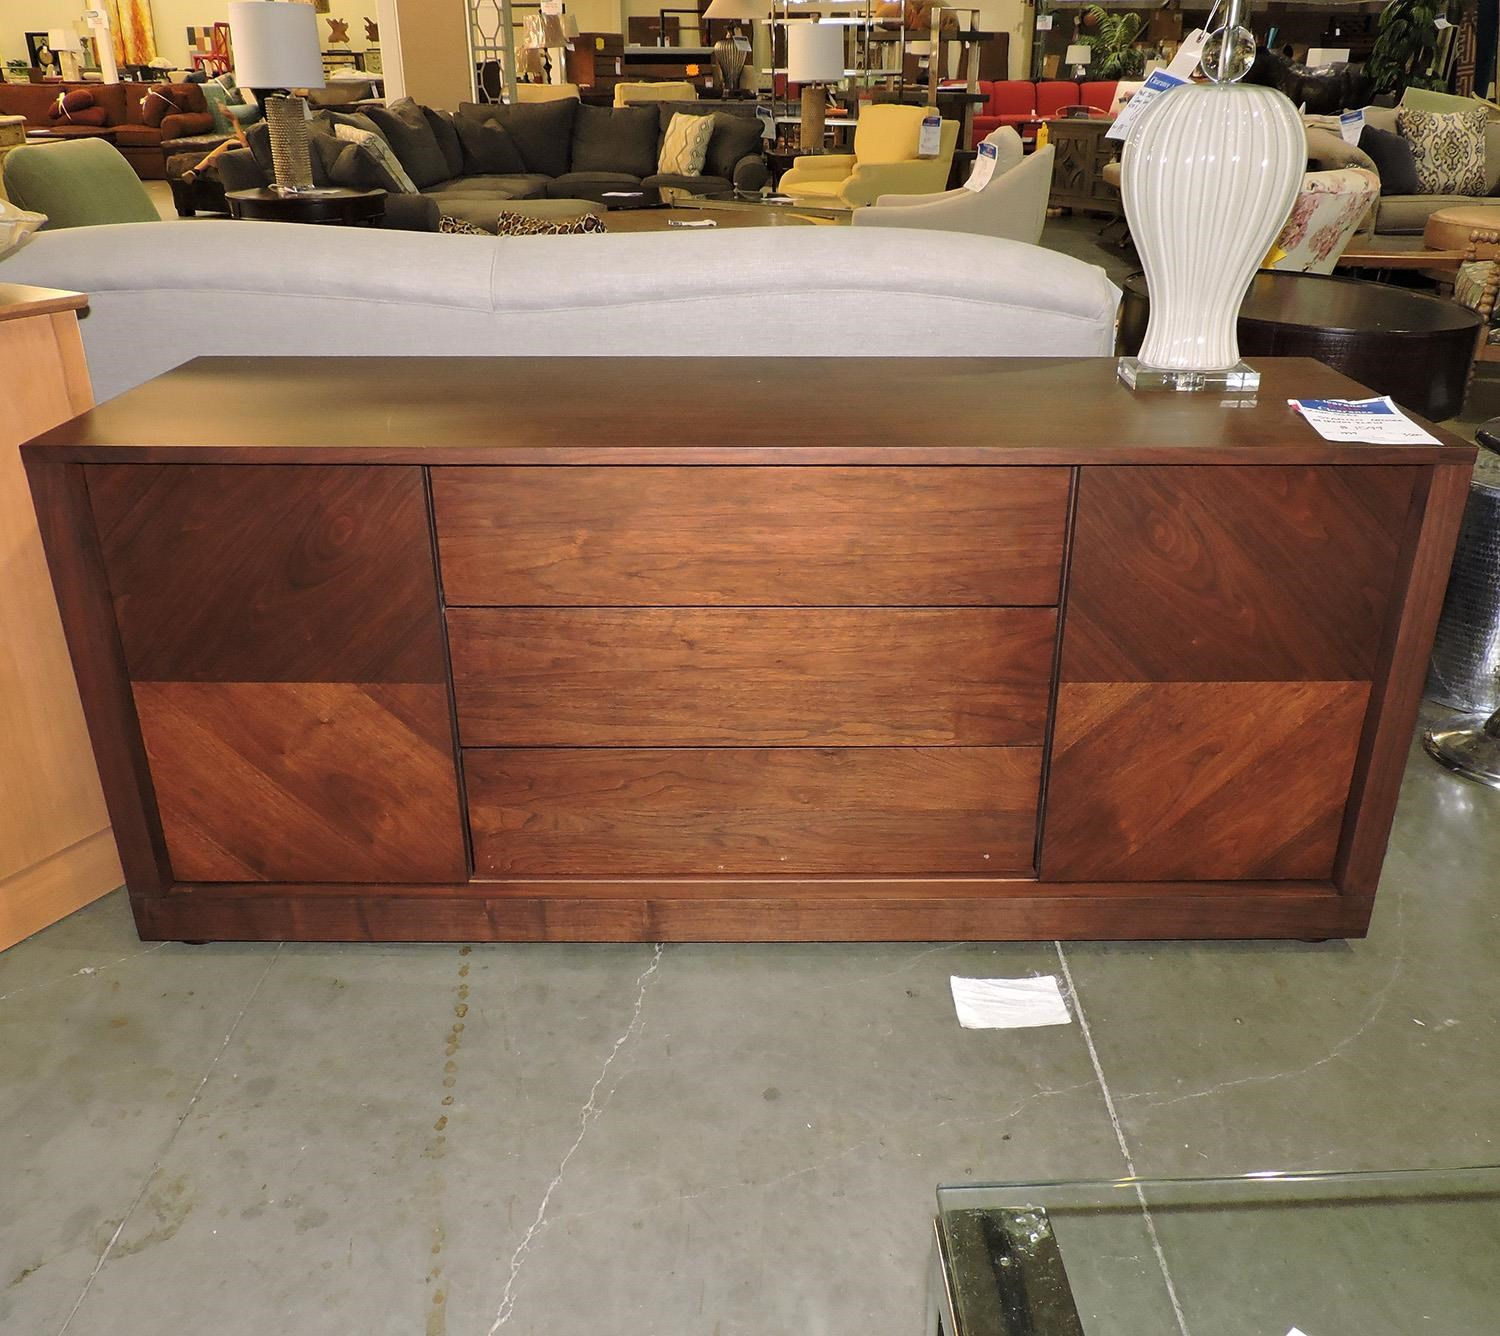 Miscellaneous Clearance Stanton Dresser - Item Number: 558264168